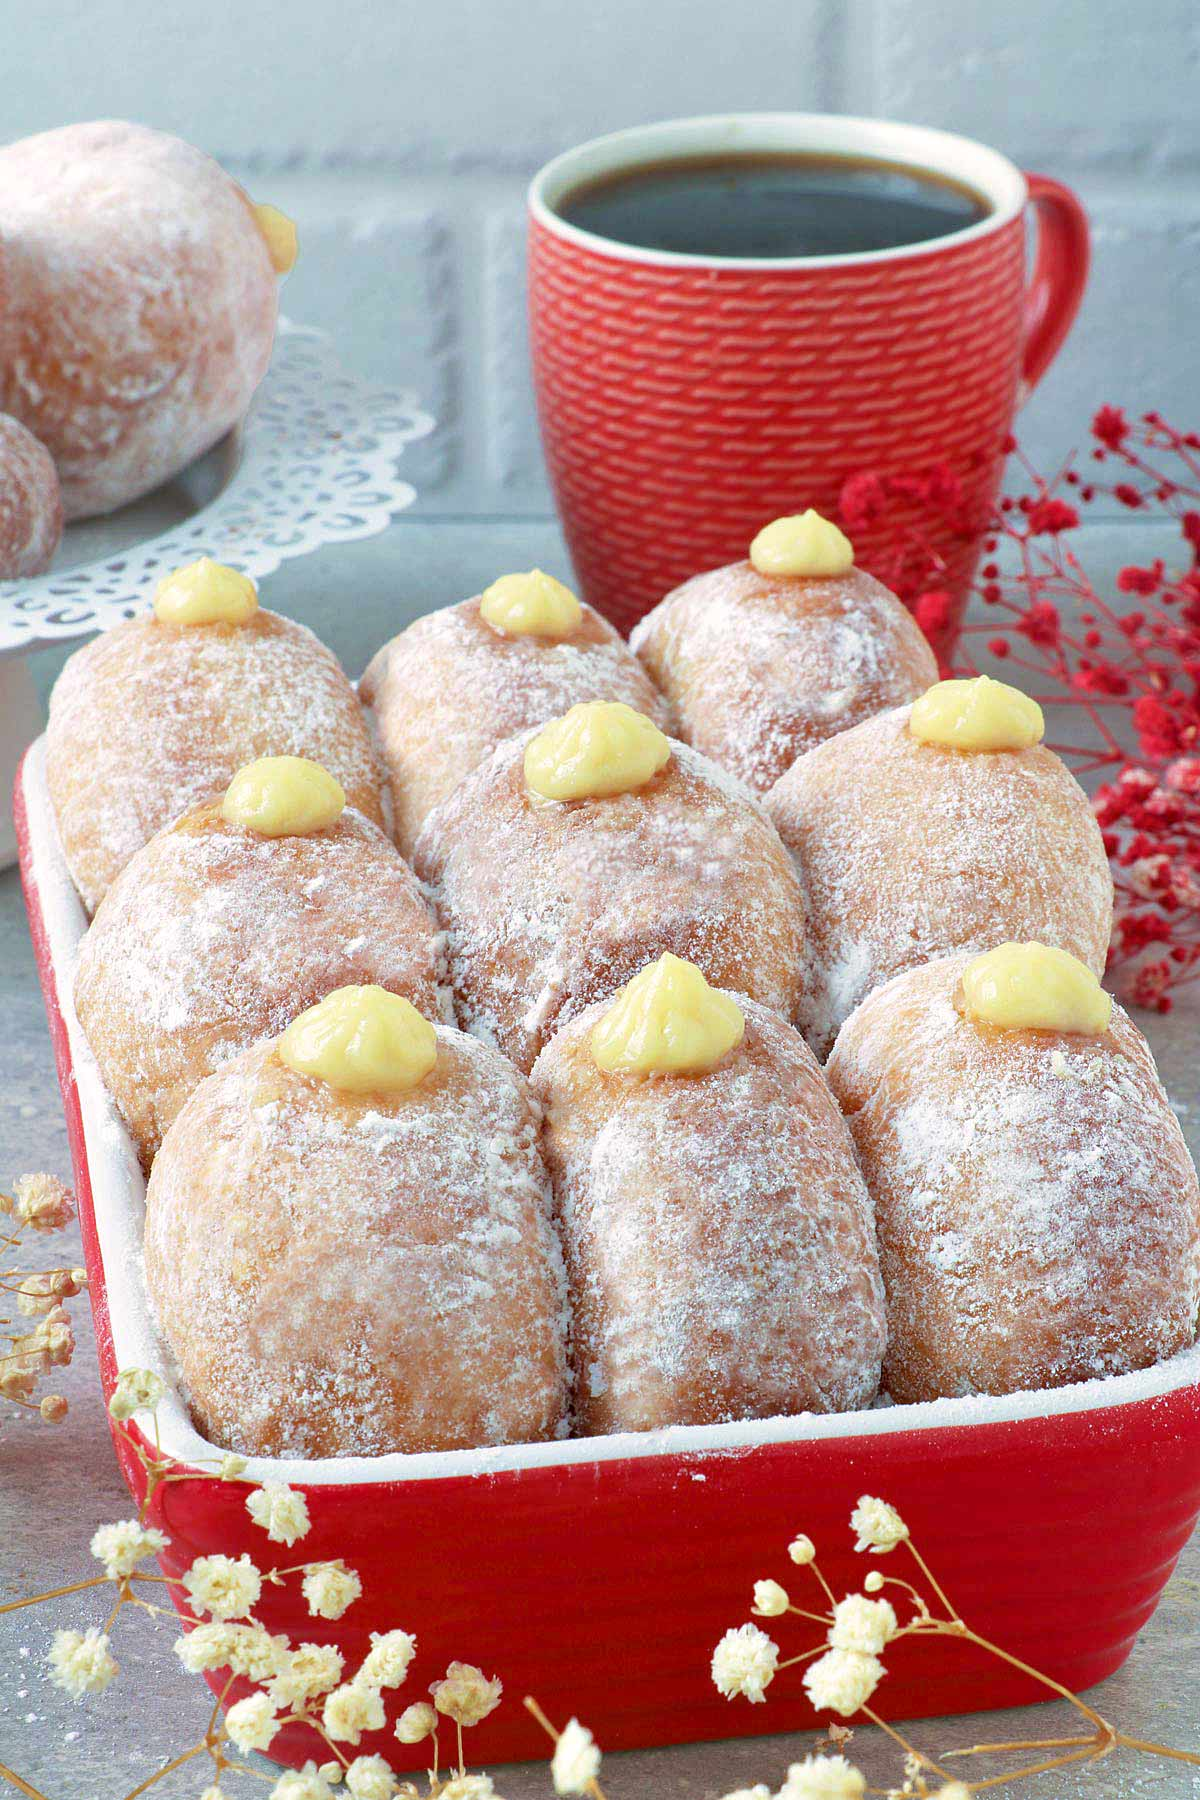 Donuts filled with bavarian cream on a box.